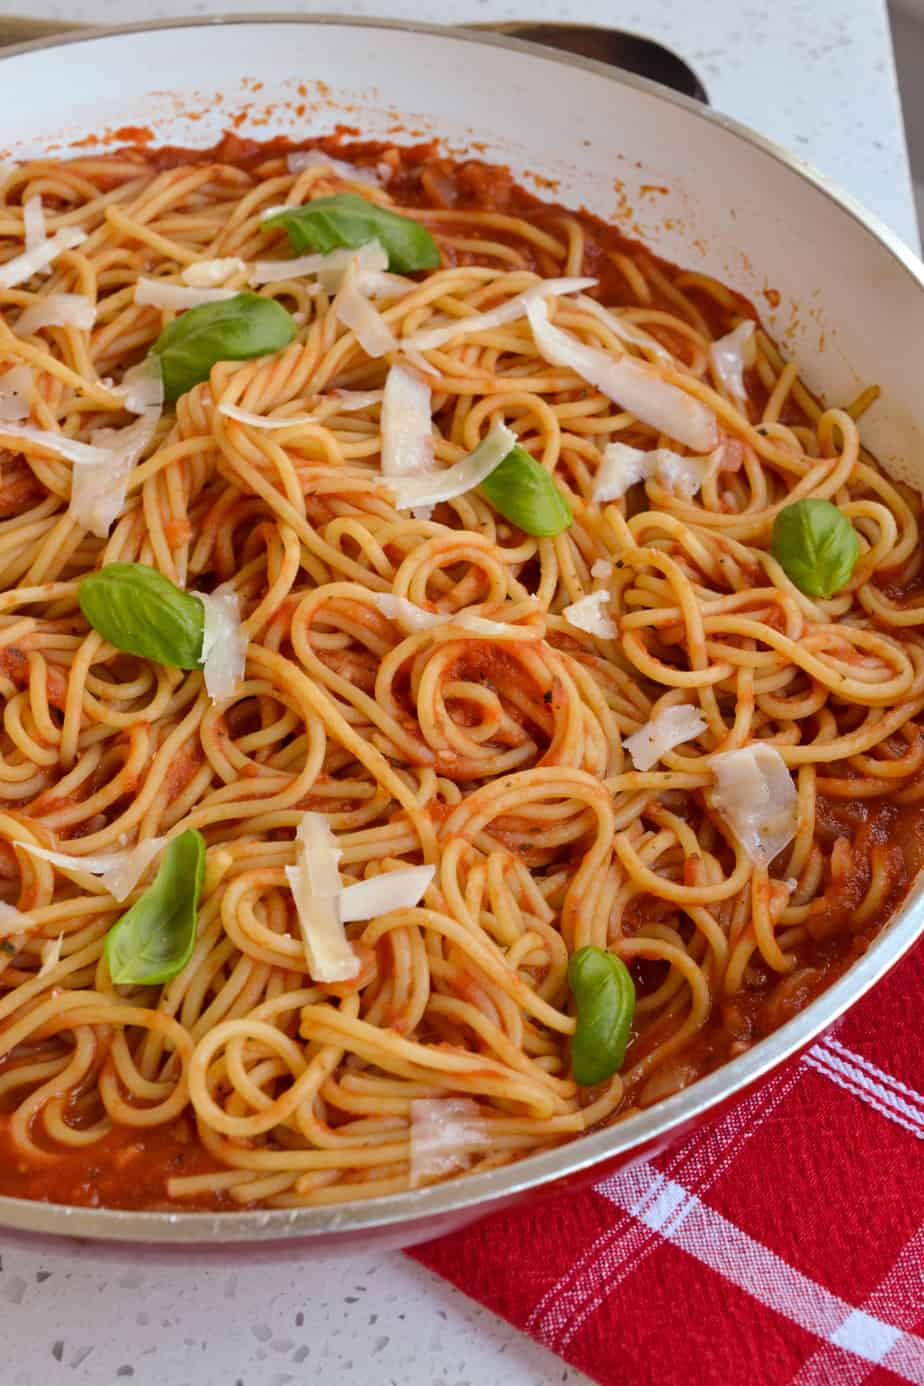 A skillet of spaghetti with tomato sauce.